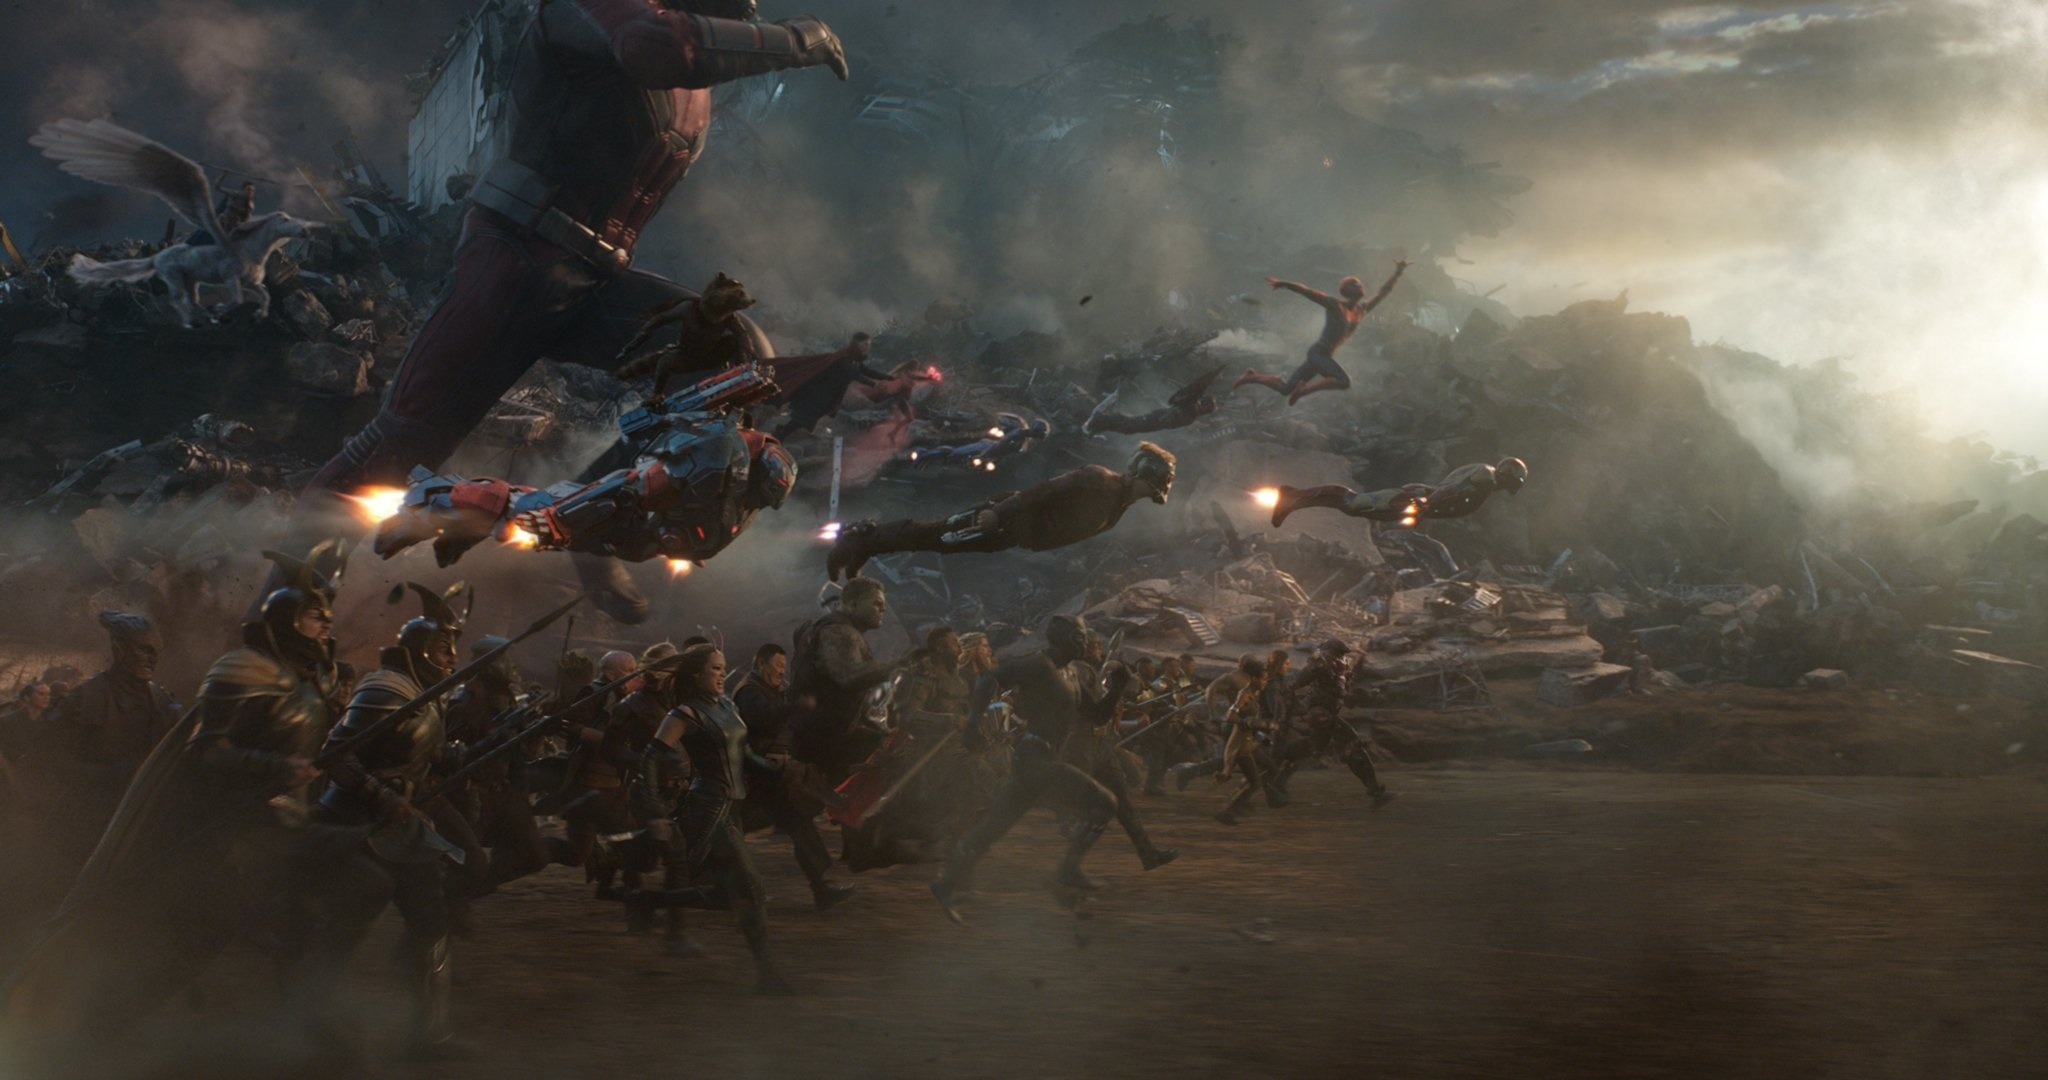 Avengers Endgame How Would The Final Battle Against Thanos Play